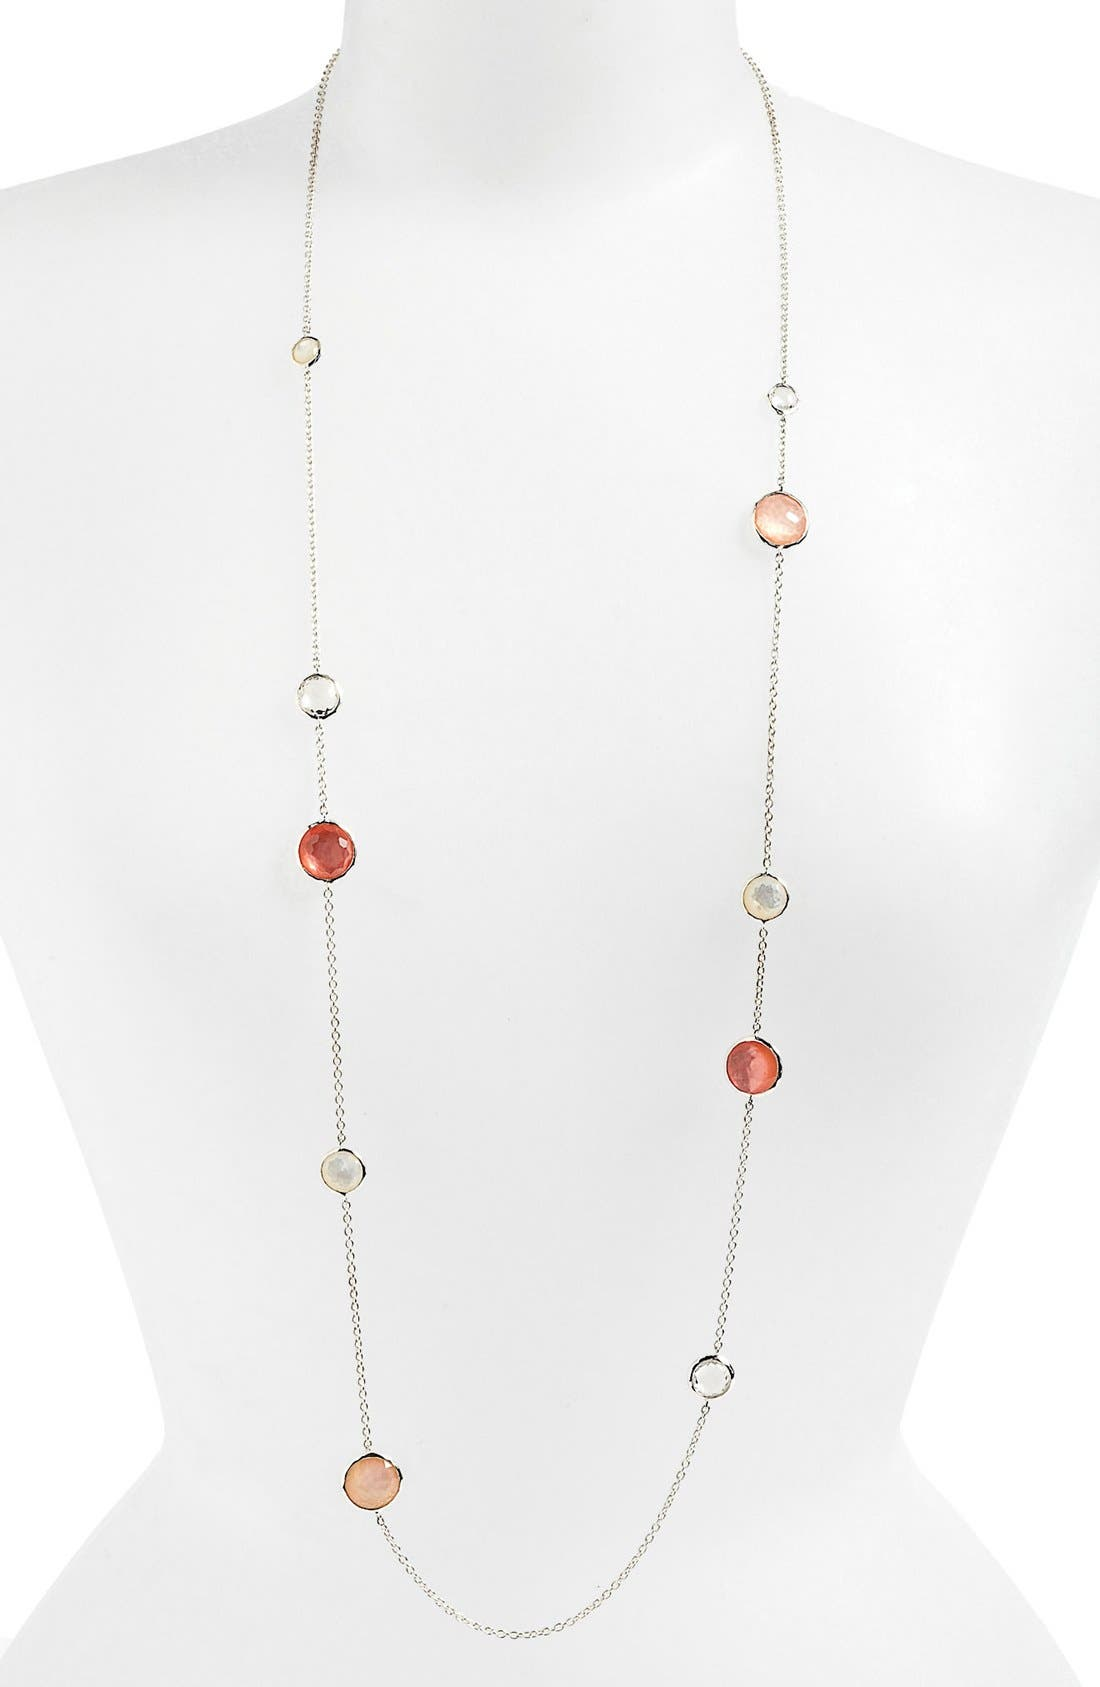 Main Image - Ippolita 'Wonderland - Lollipop' Long Station Necklace (Nordstrom Exclusive)